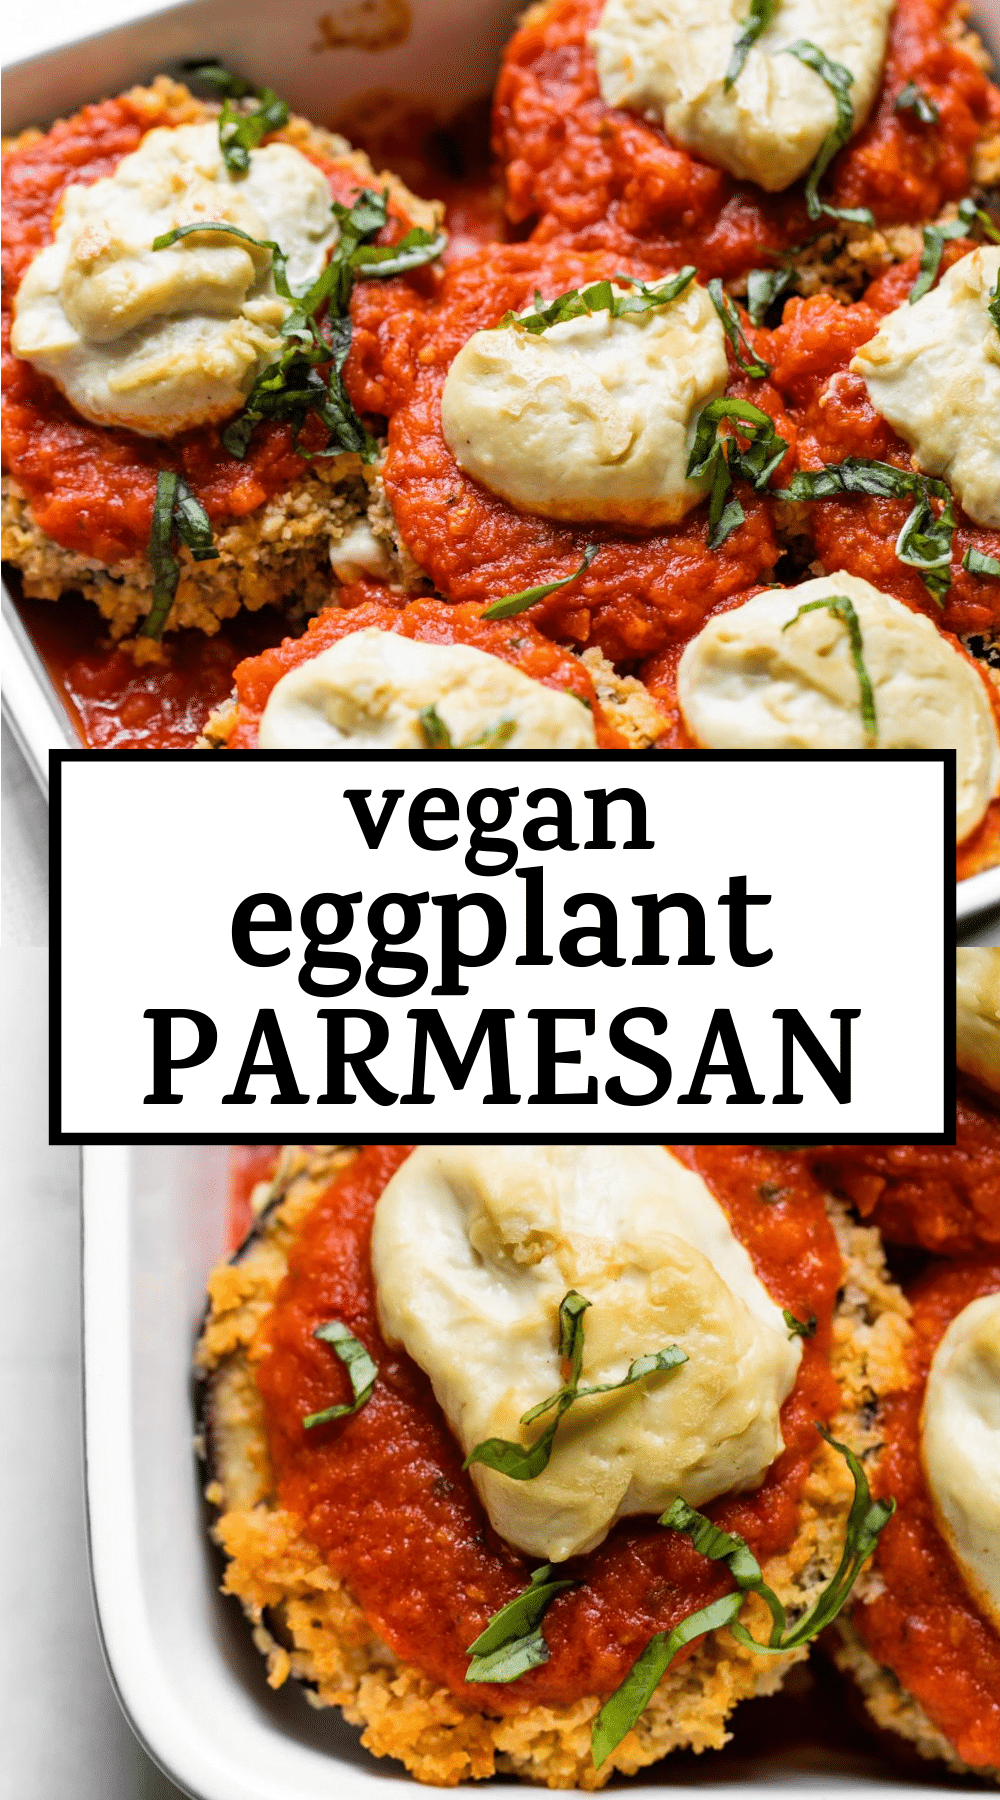 Easy Baked Vegan Eggplant Parmesan Made With Crispy Eggplant And Topped With Vegan Mozzarella In 2020 Beef Recipes Easy Vegan Dinner Recipes Vegetarian Vegan Recipes